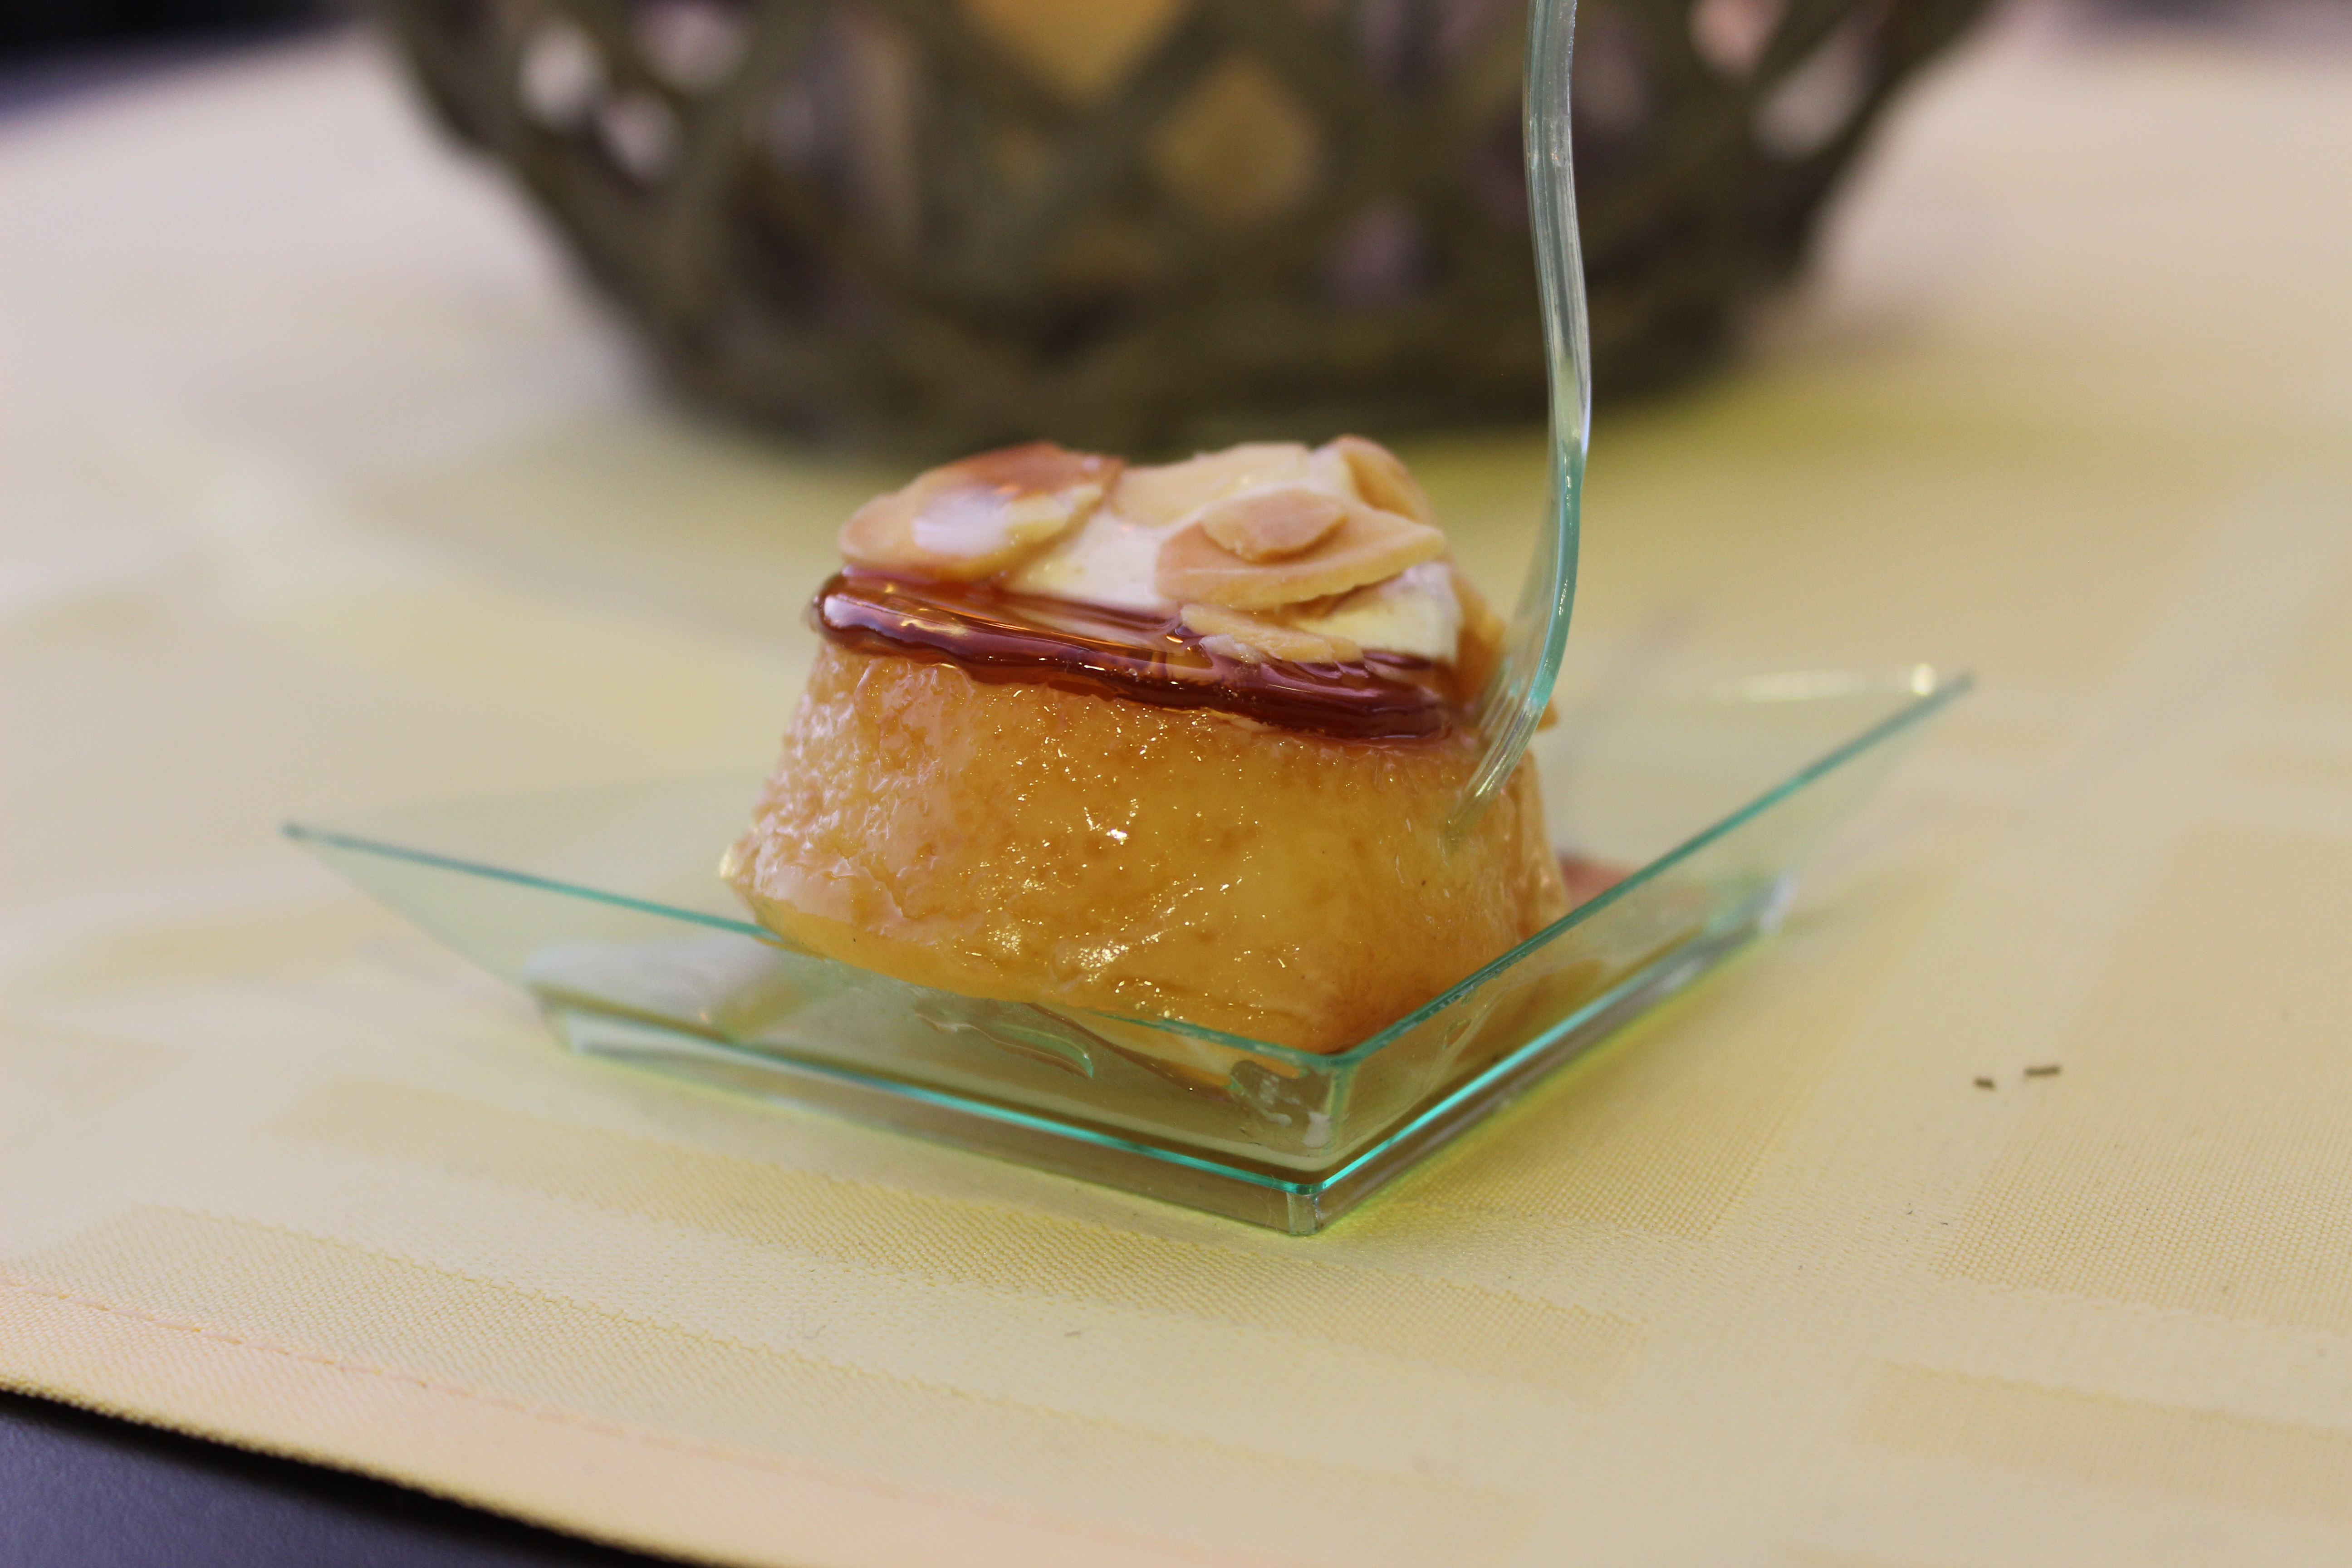 Rum Chata Flan with Cinnamon Weep Cream & Almond Candy